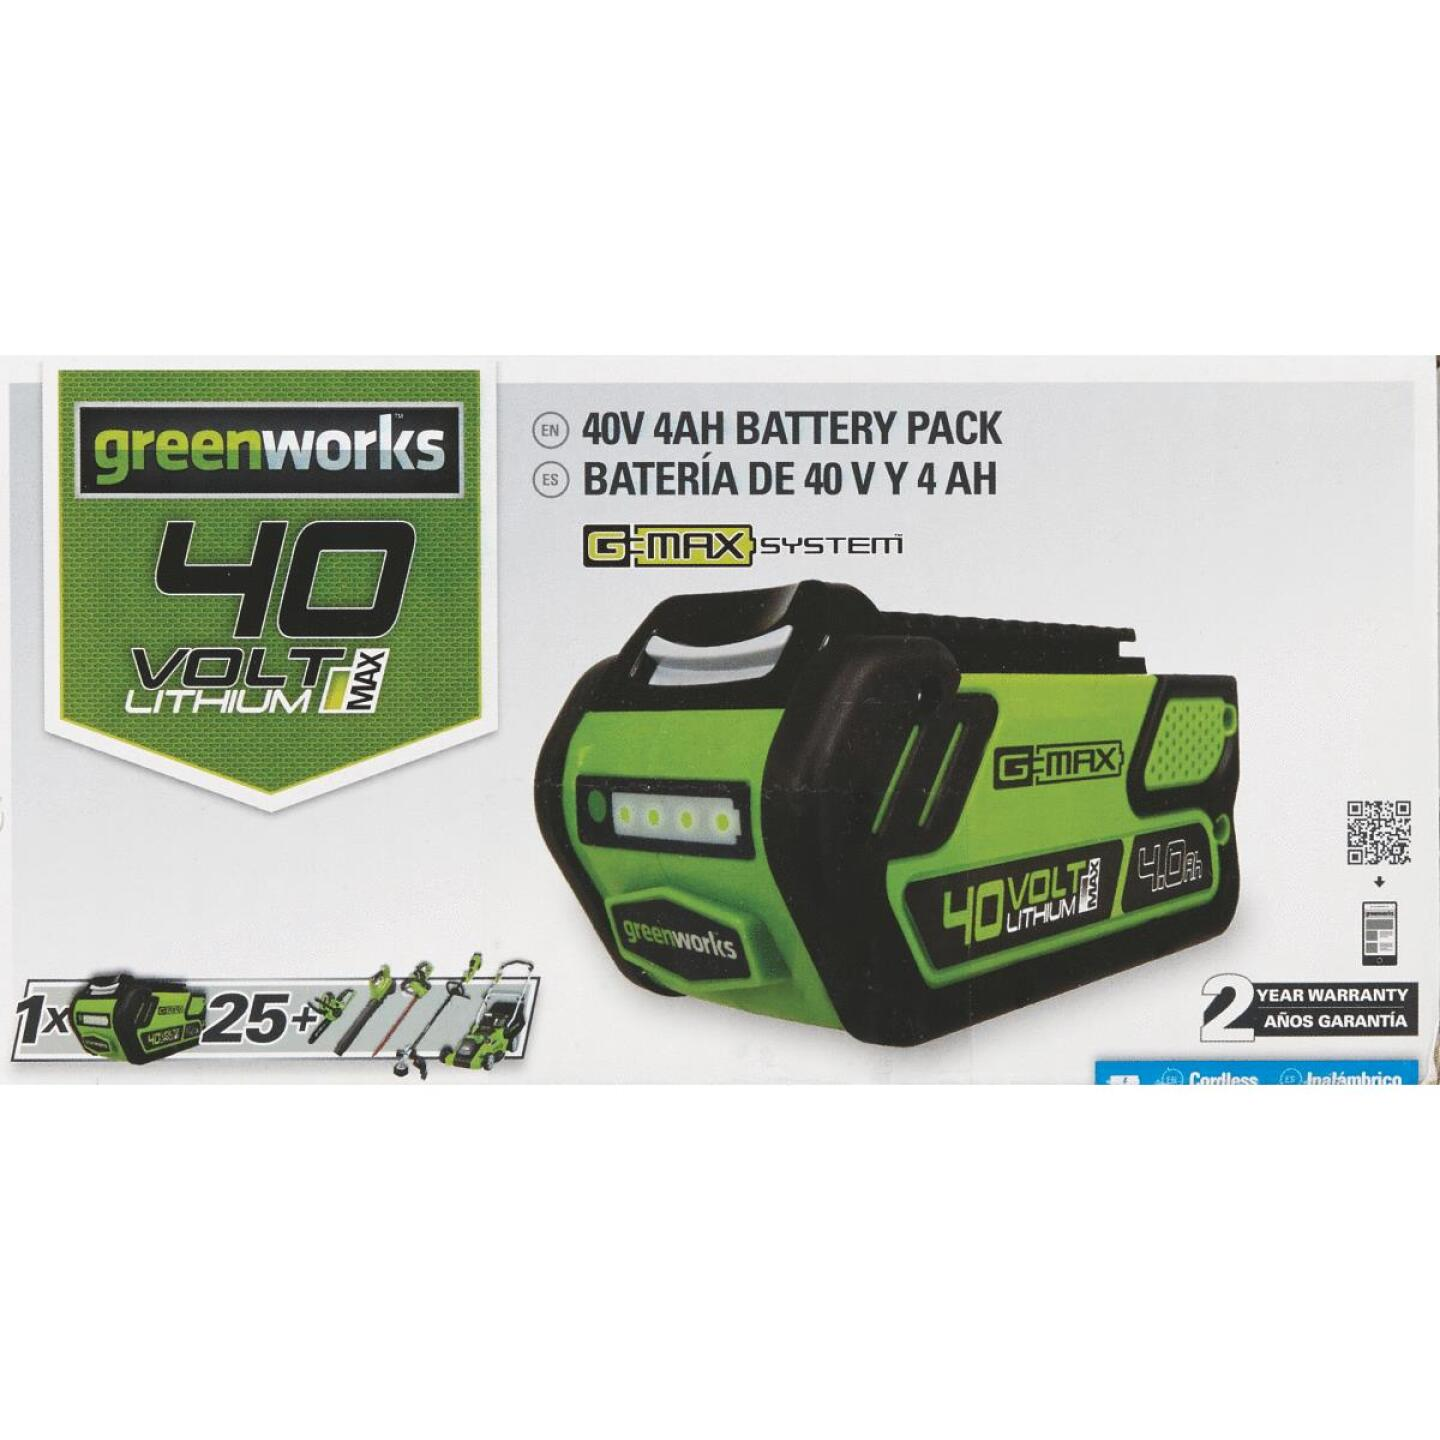 Greenworks 40V 4AH Tool Replacement Battery Image 2